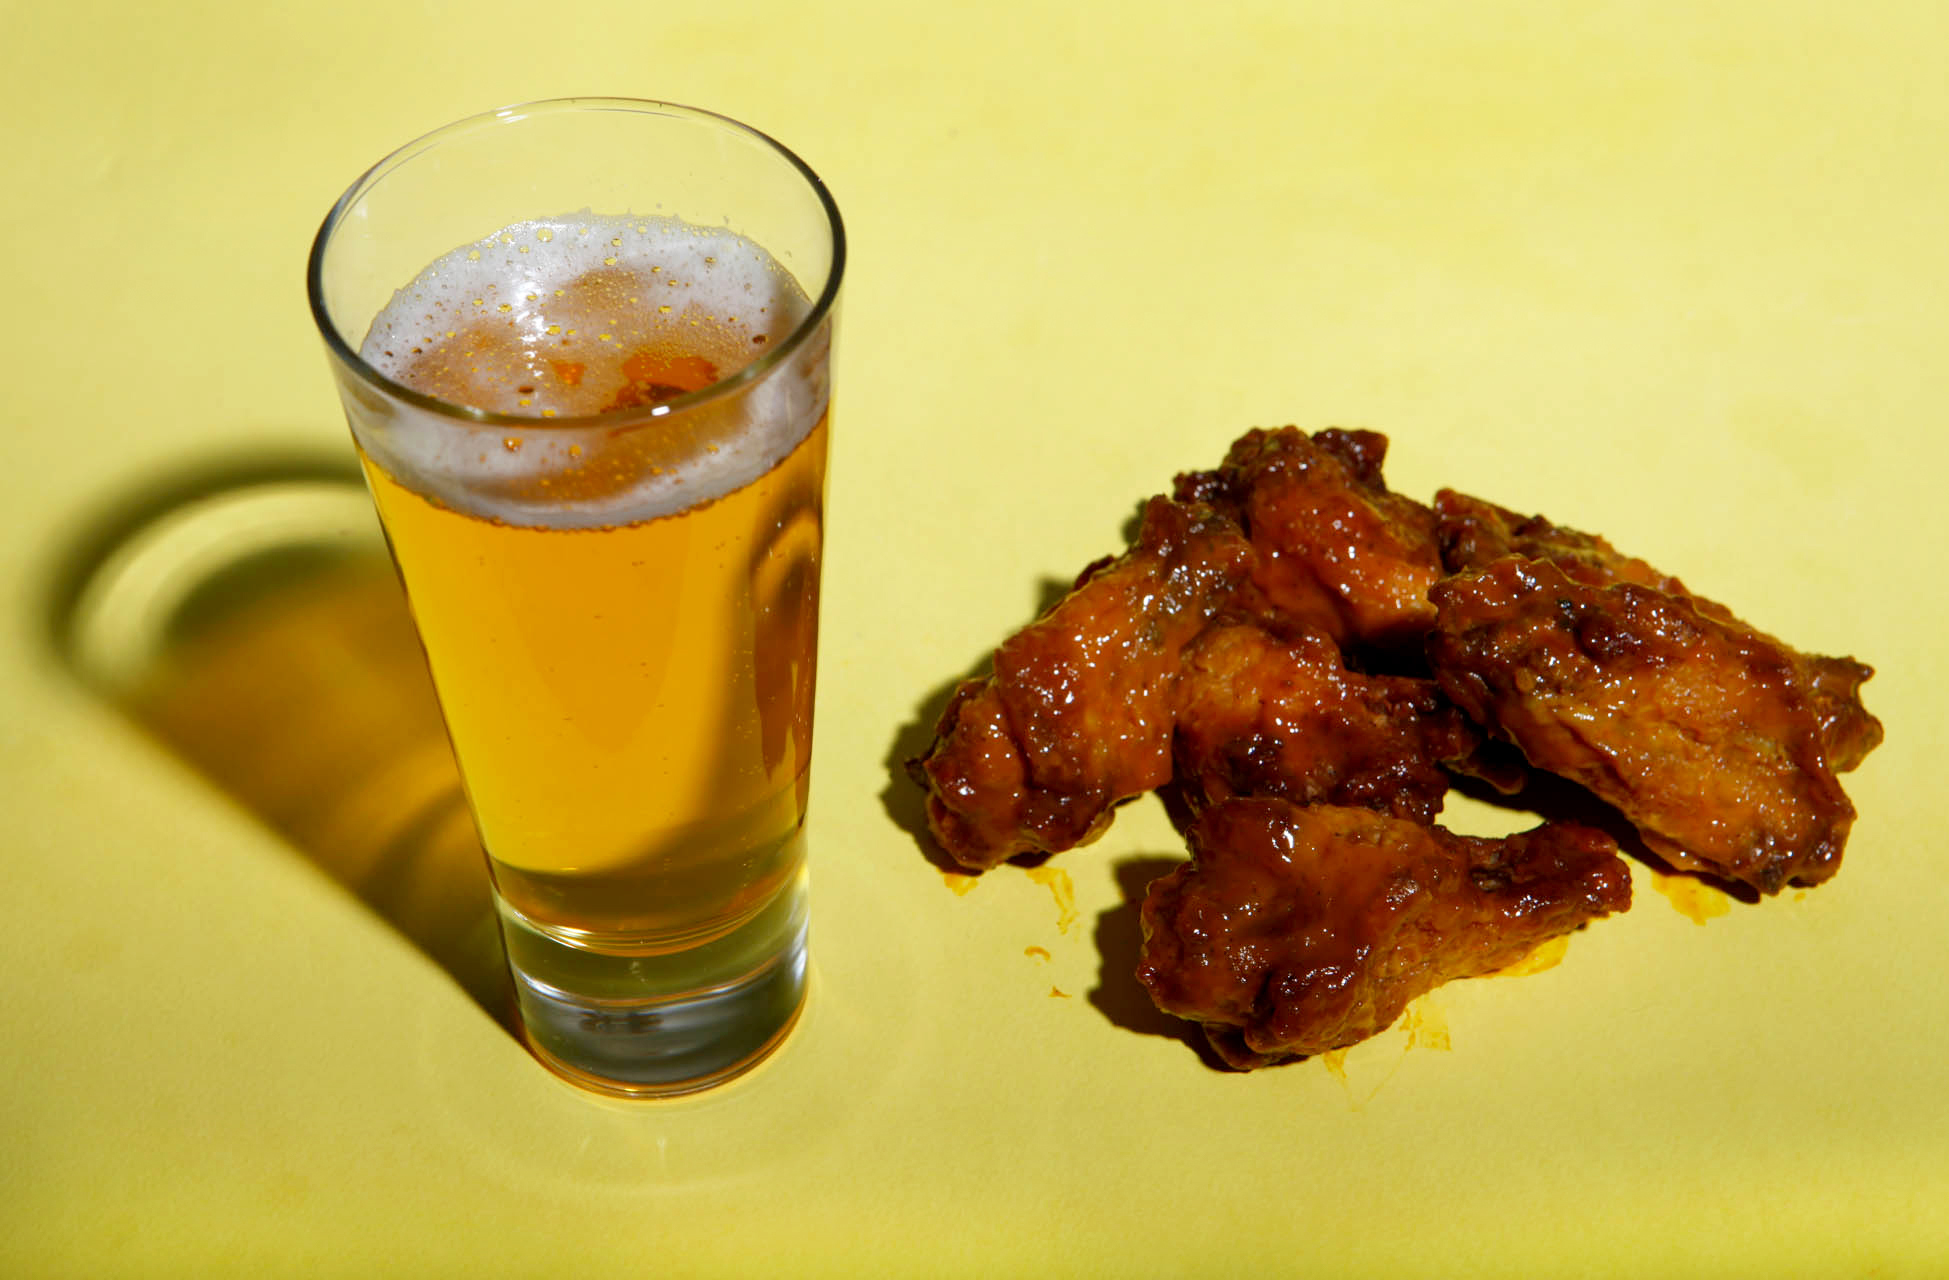 Buffalo wings paired with Mama's Little Yella Pils